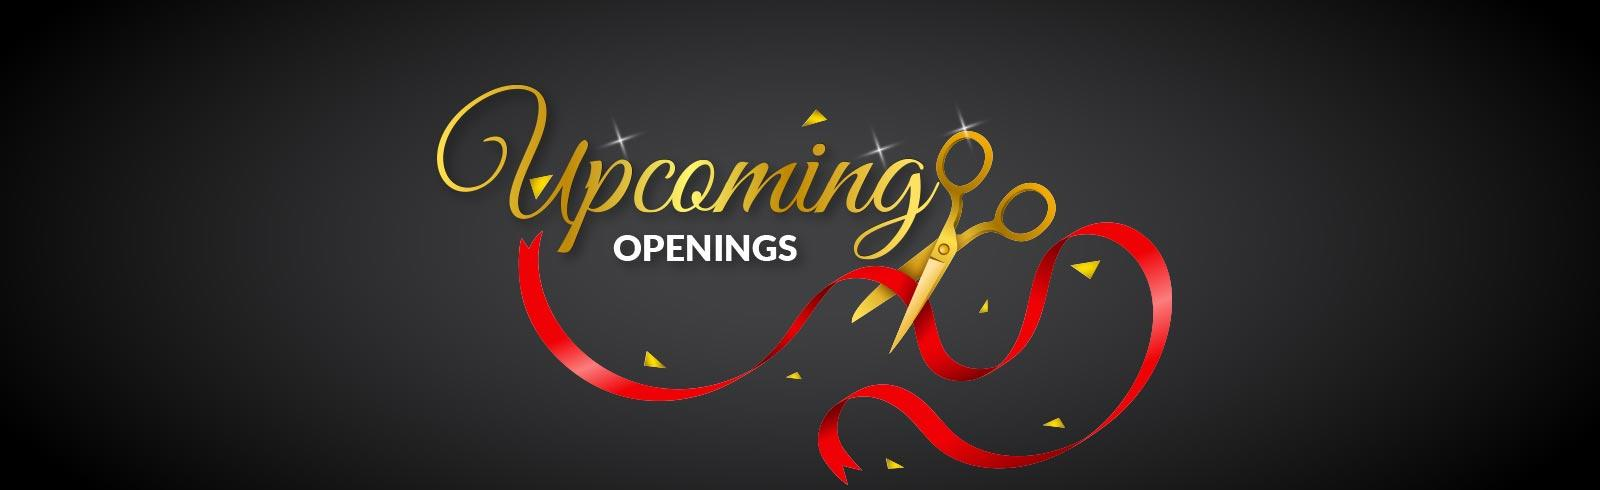 Upcoming Openings